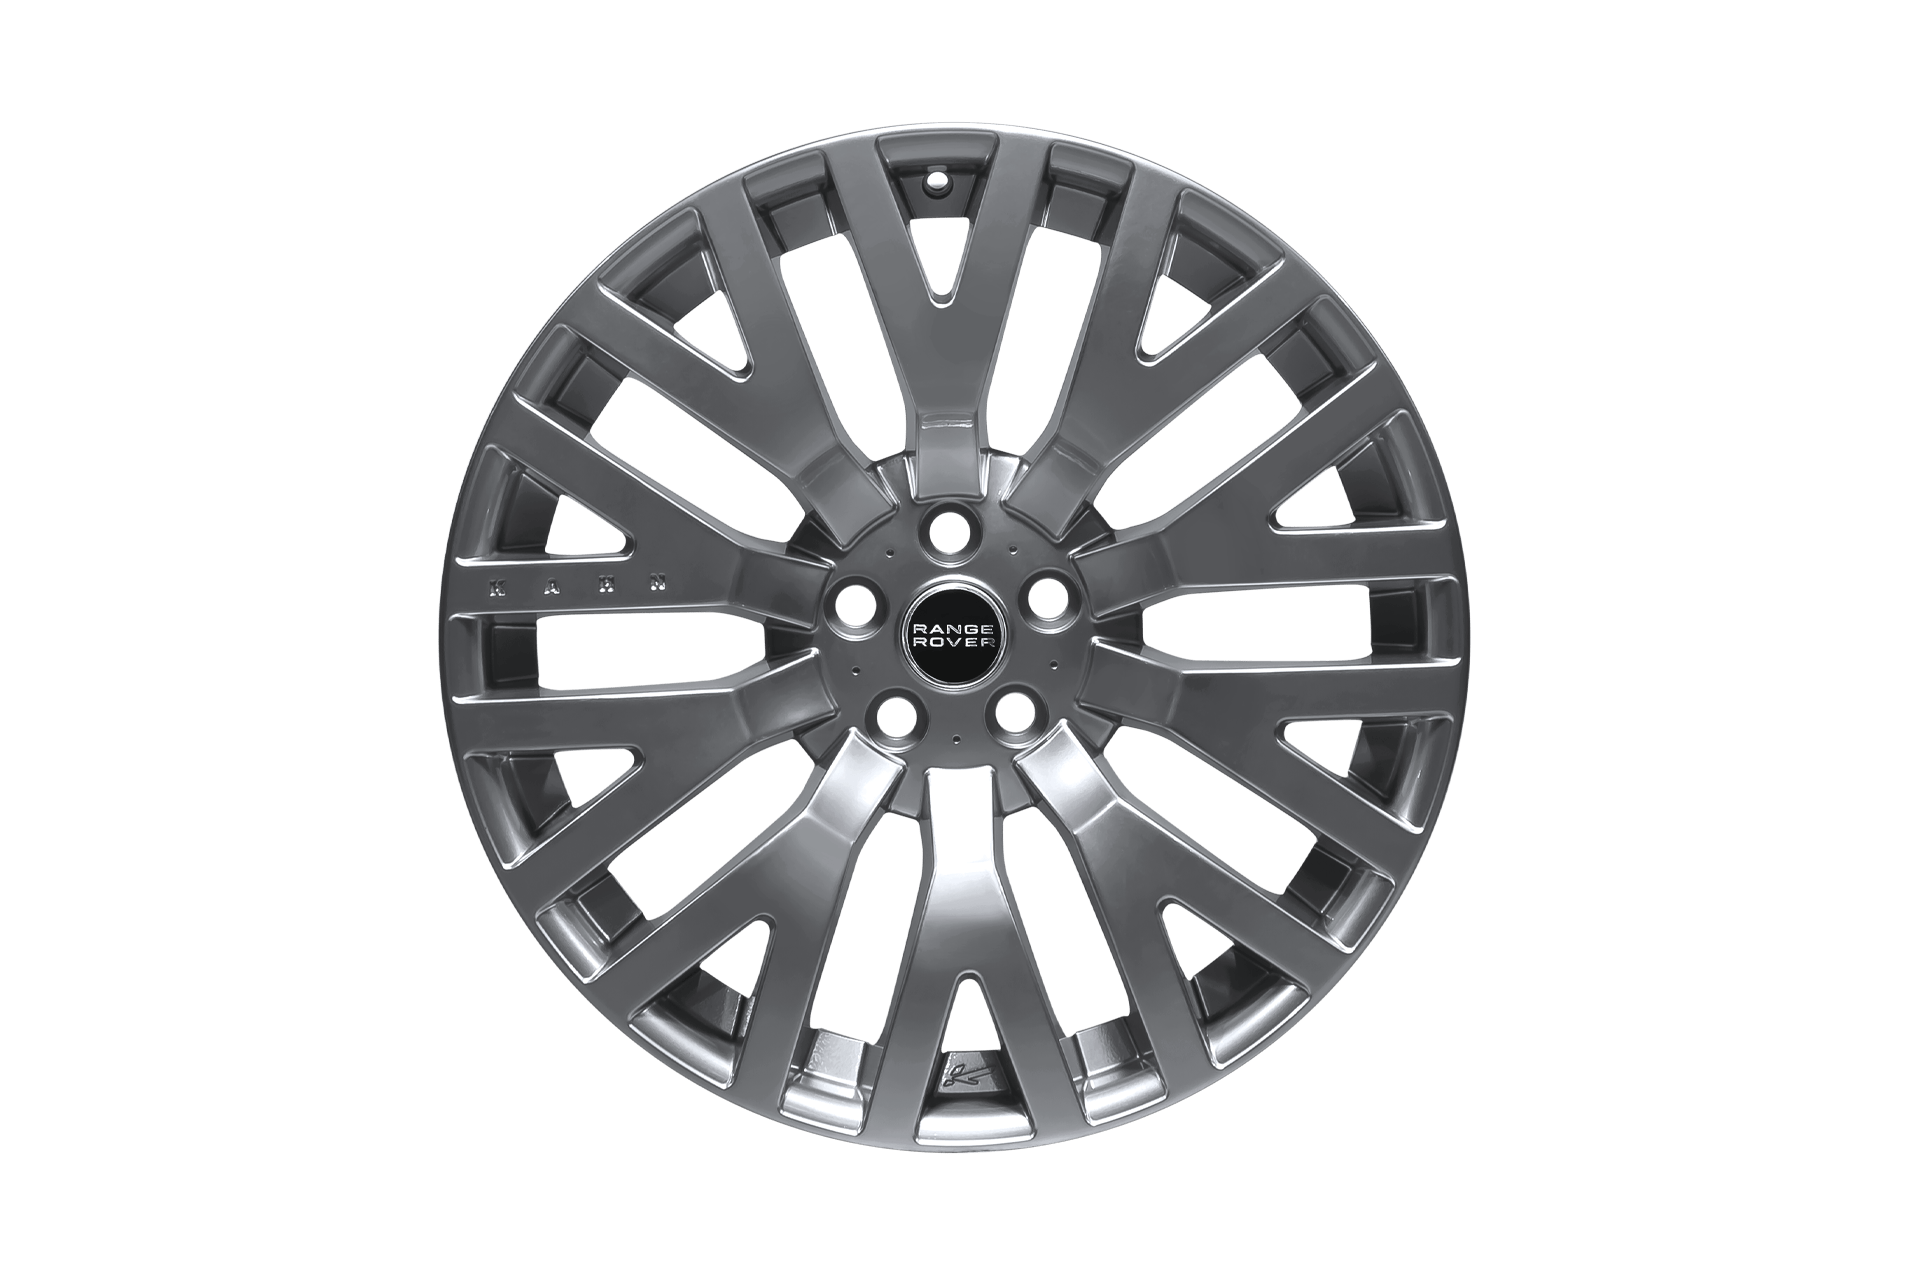 Range Rover Sport (2005-2013) Rs Light Alloy Wheels by Kahn - Image 3178